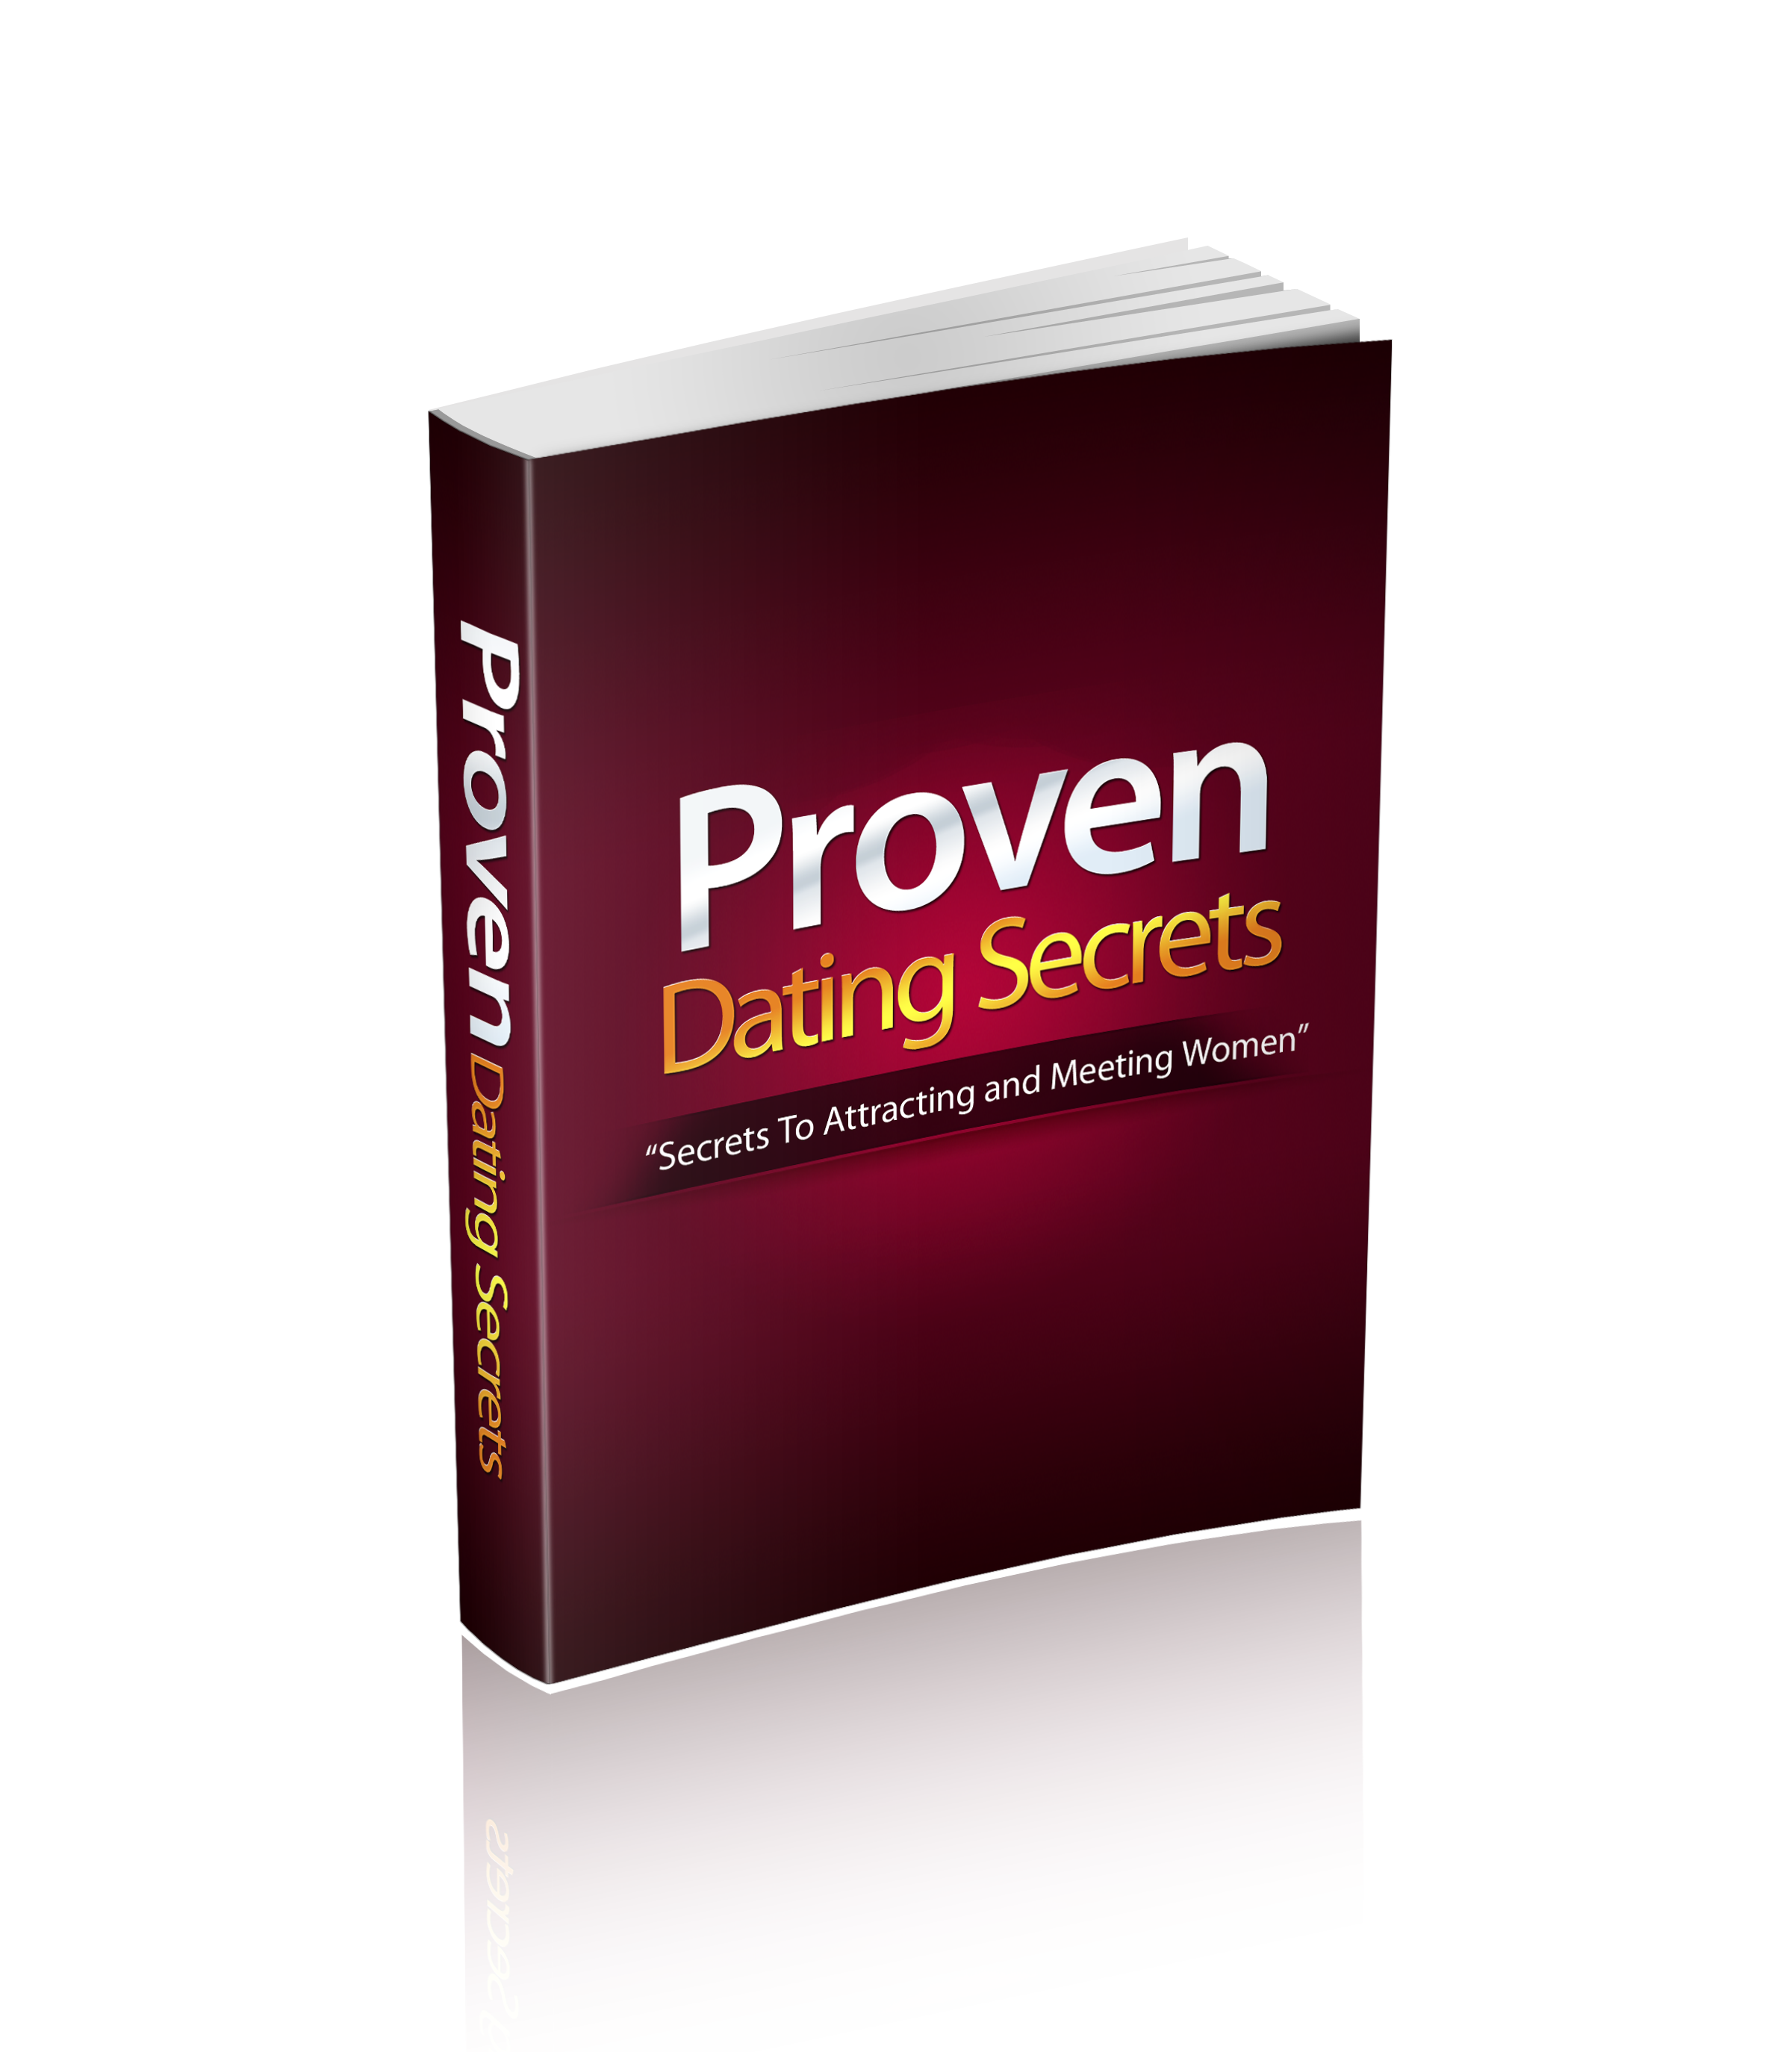 double your dating ebook free online The first double your dating ebook came out in 2001, and quickly made waves as one of the first ebooks to give real, relatable, and effective dating advice to men.